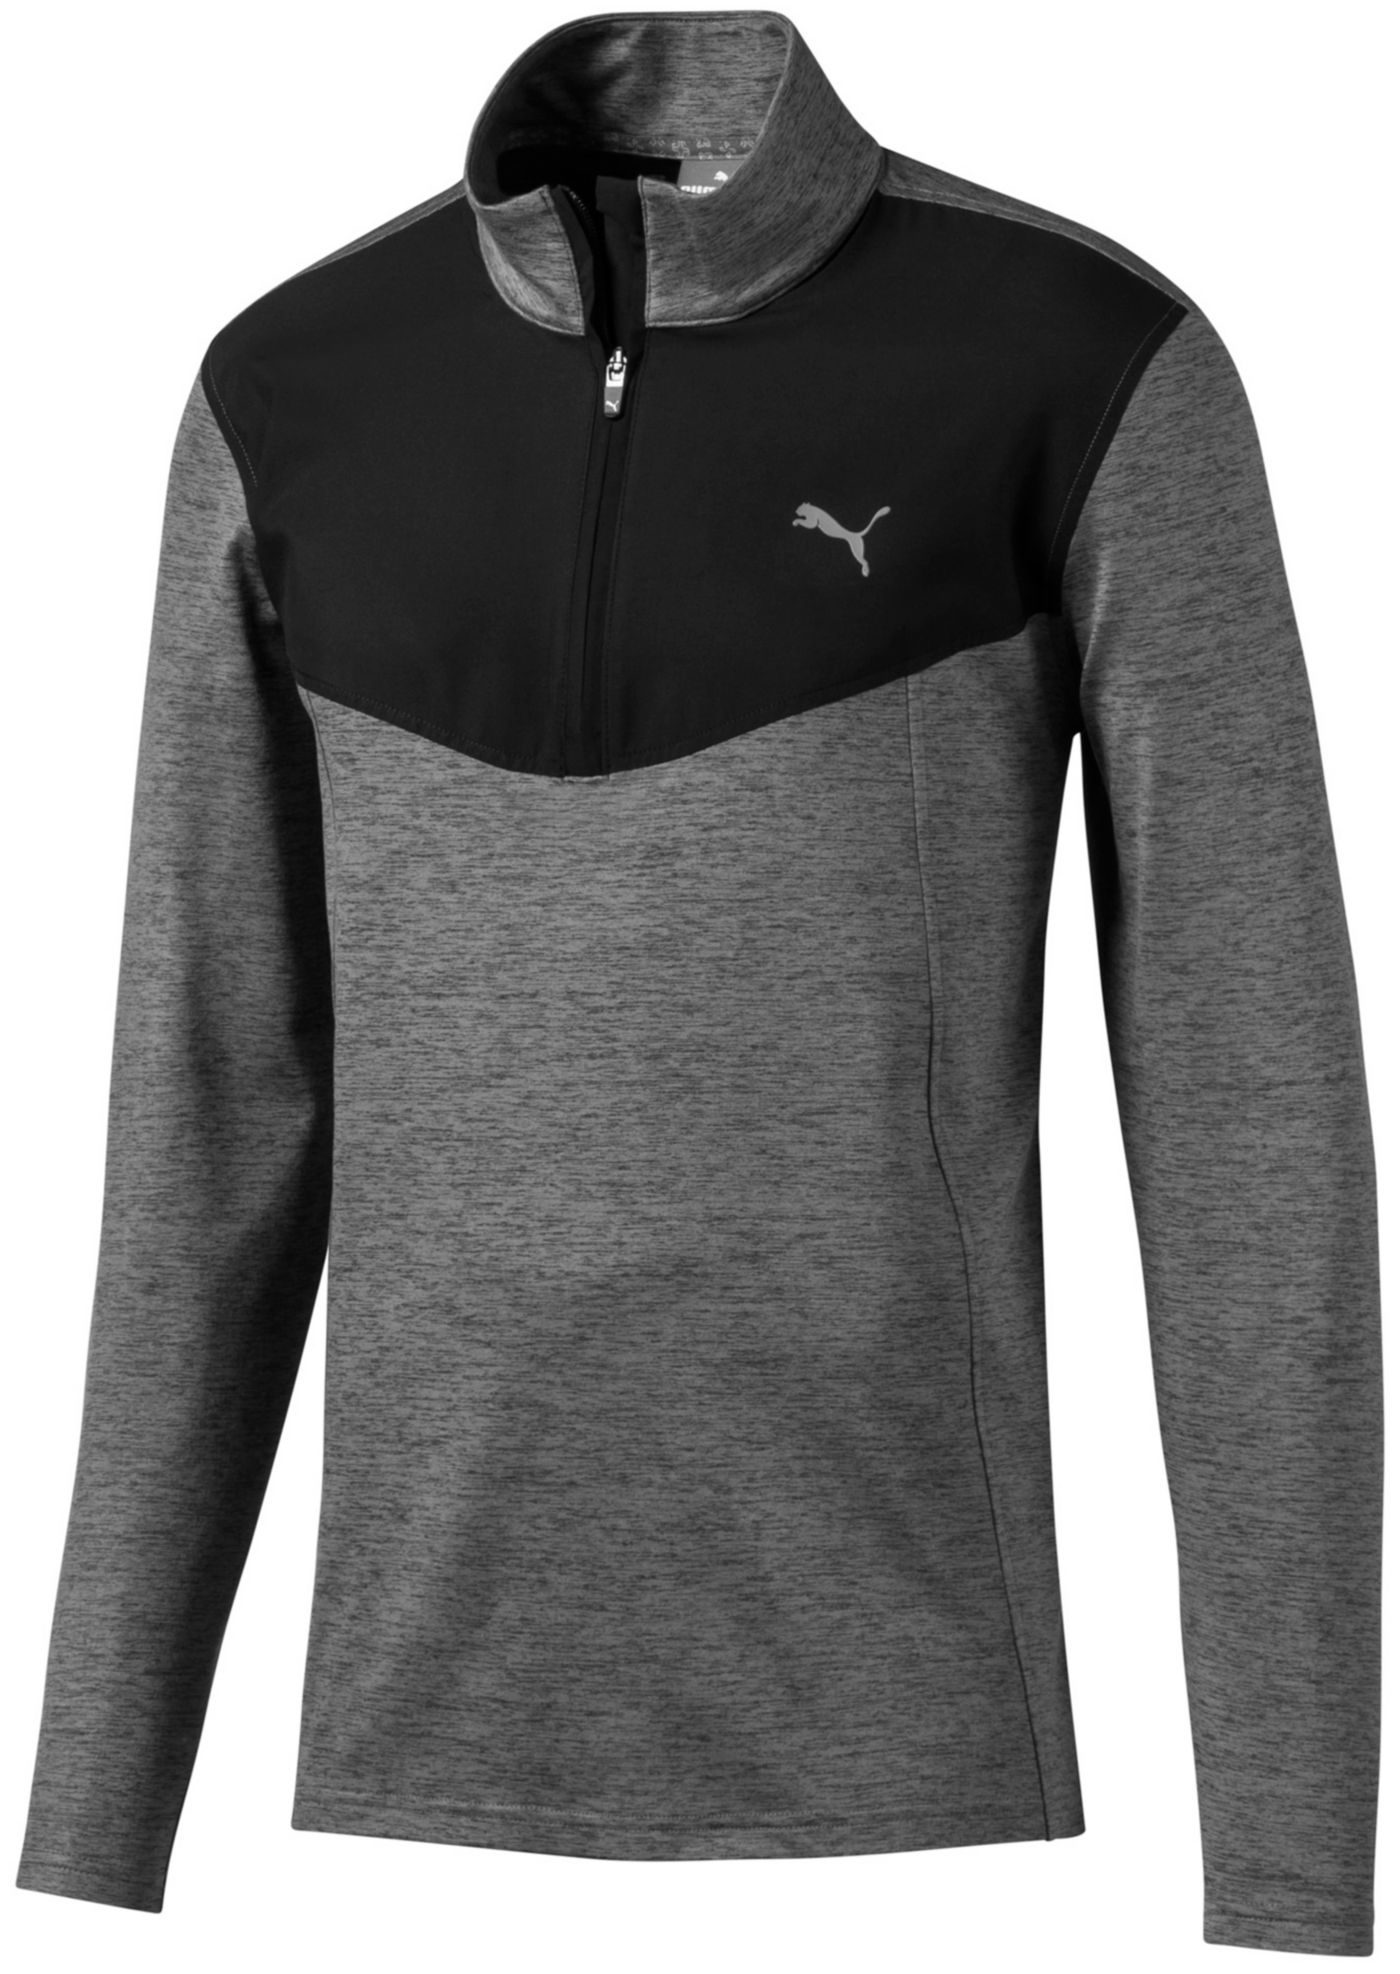 PUMA Men's Preston ¼ Zip Golf Pullover